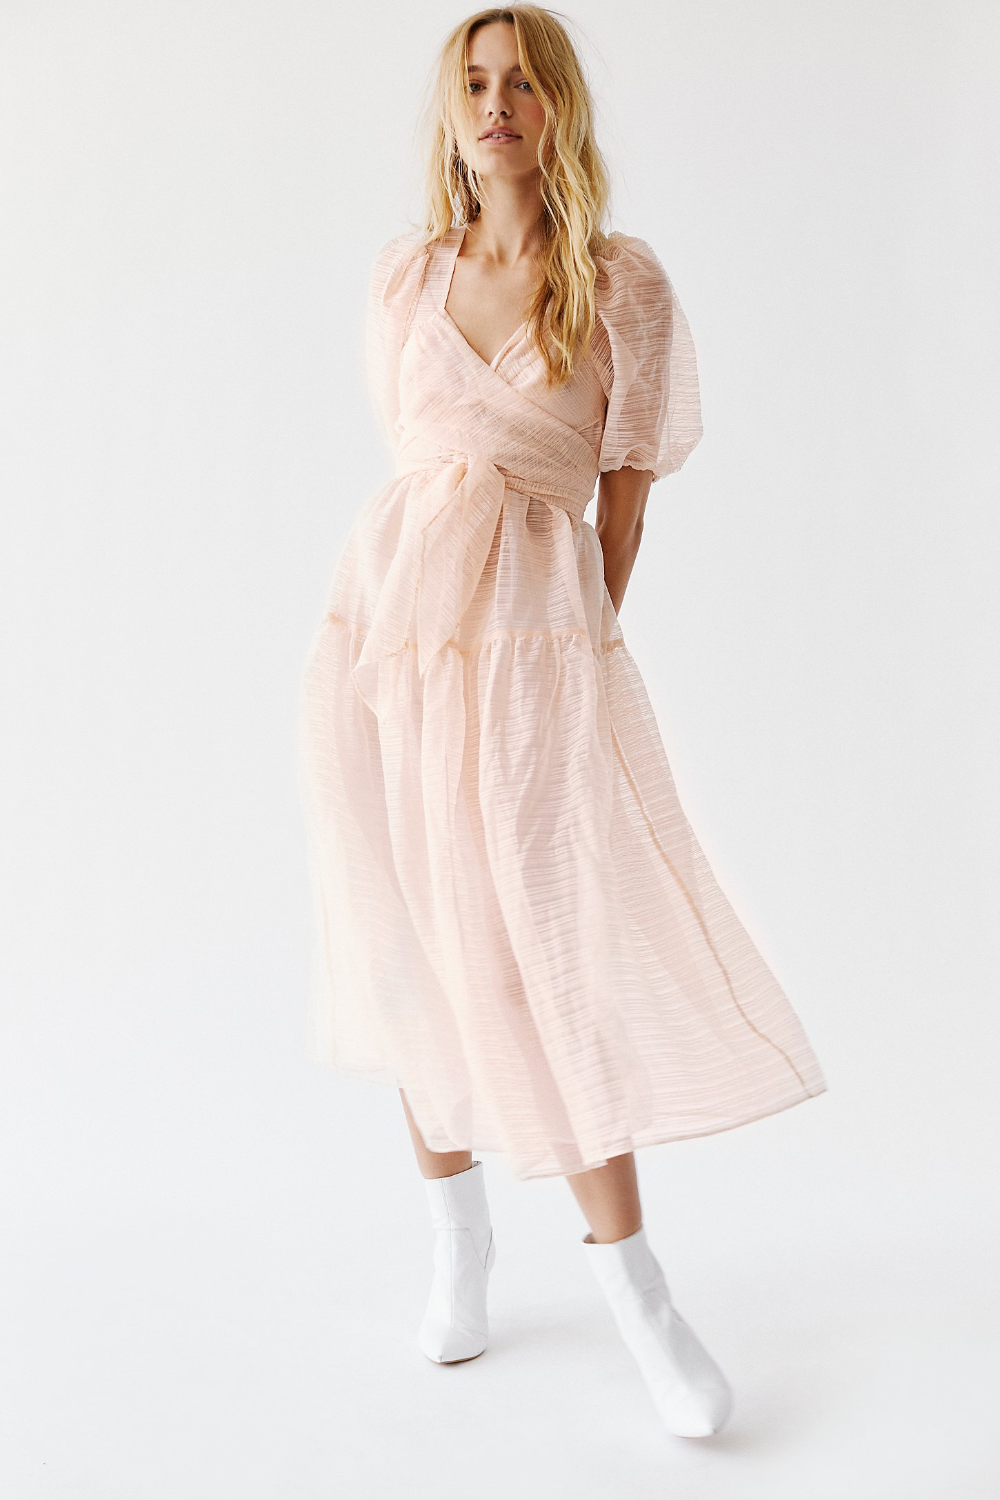 Hailey Dress in 2020 Dresses, Fall wedding outfits, Fashion